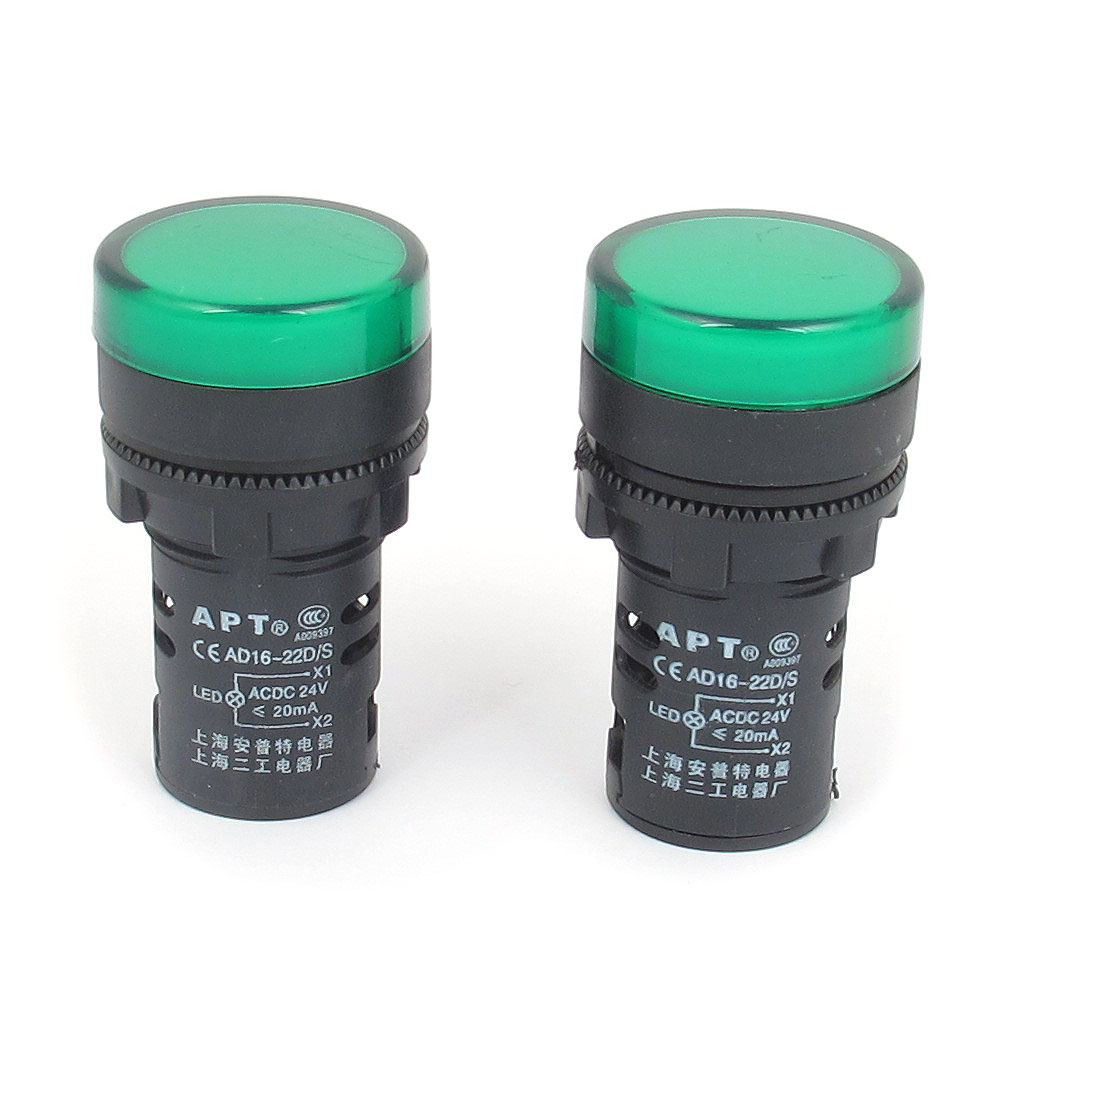 2pcs AC 24V 20mA Green Cap LED Power Indicator Pilot Signal Light Lamp Bulbs